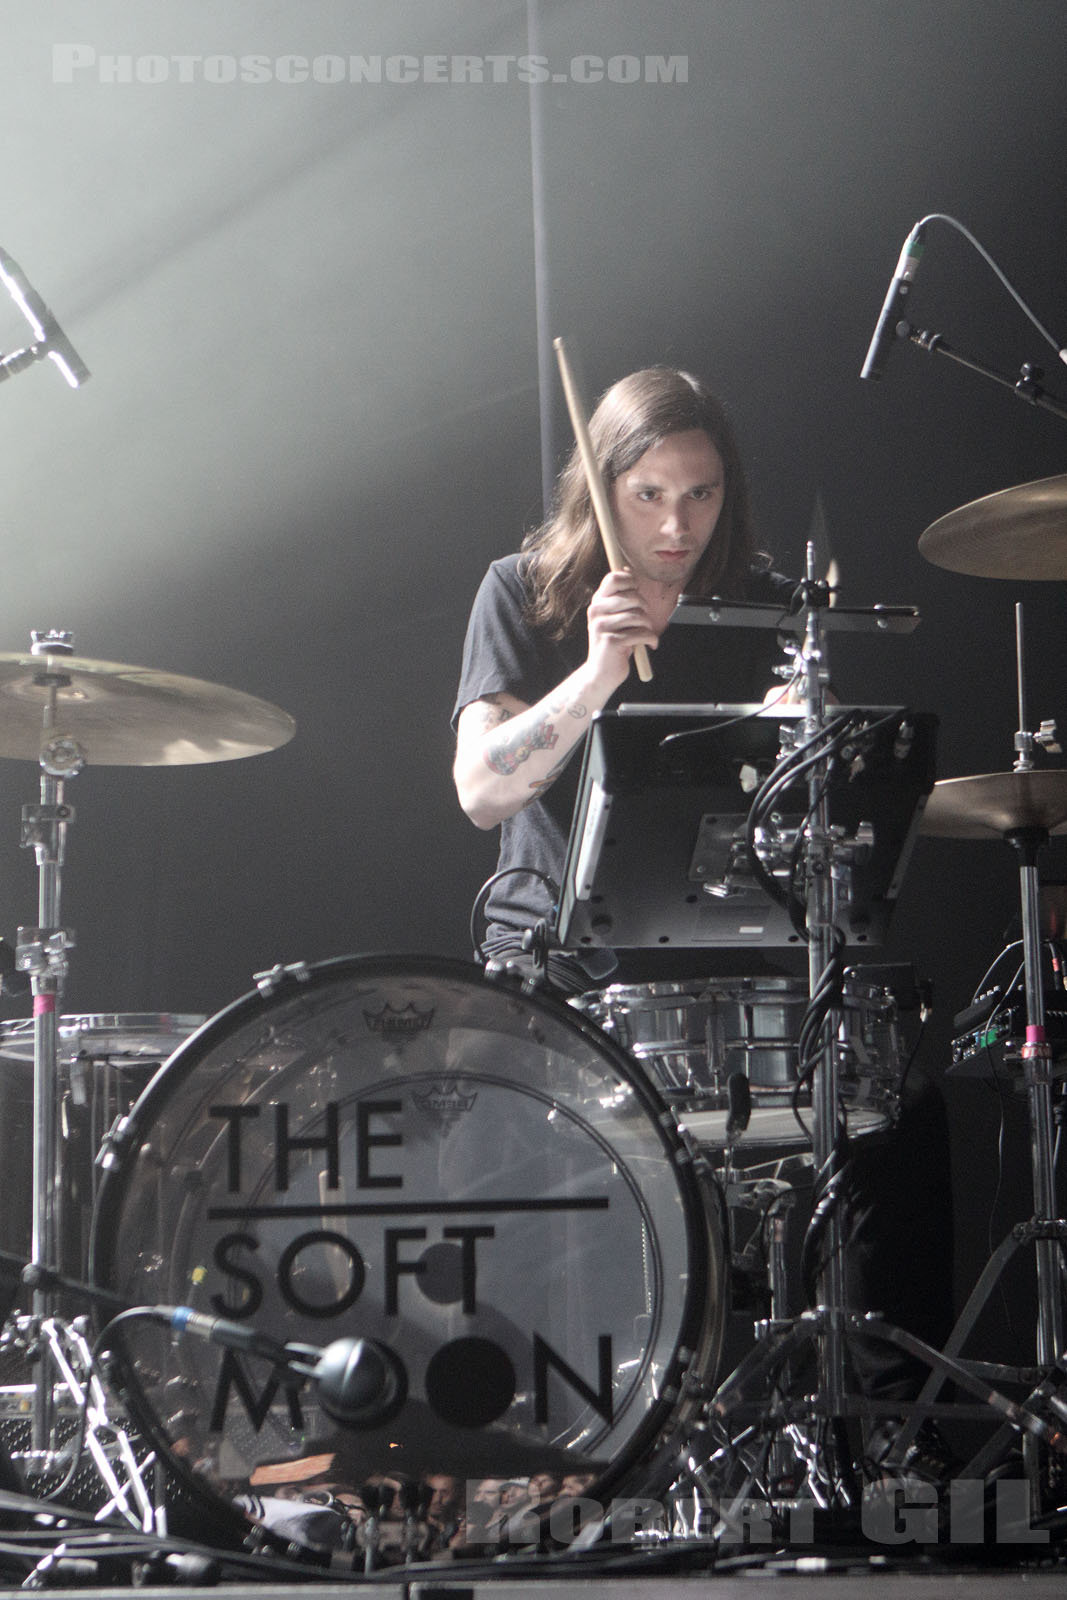 THE SOFT MOON - 2015-05-31 - NIMES - Paloma - Grande Salle